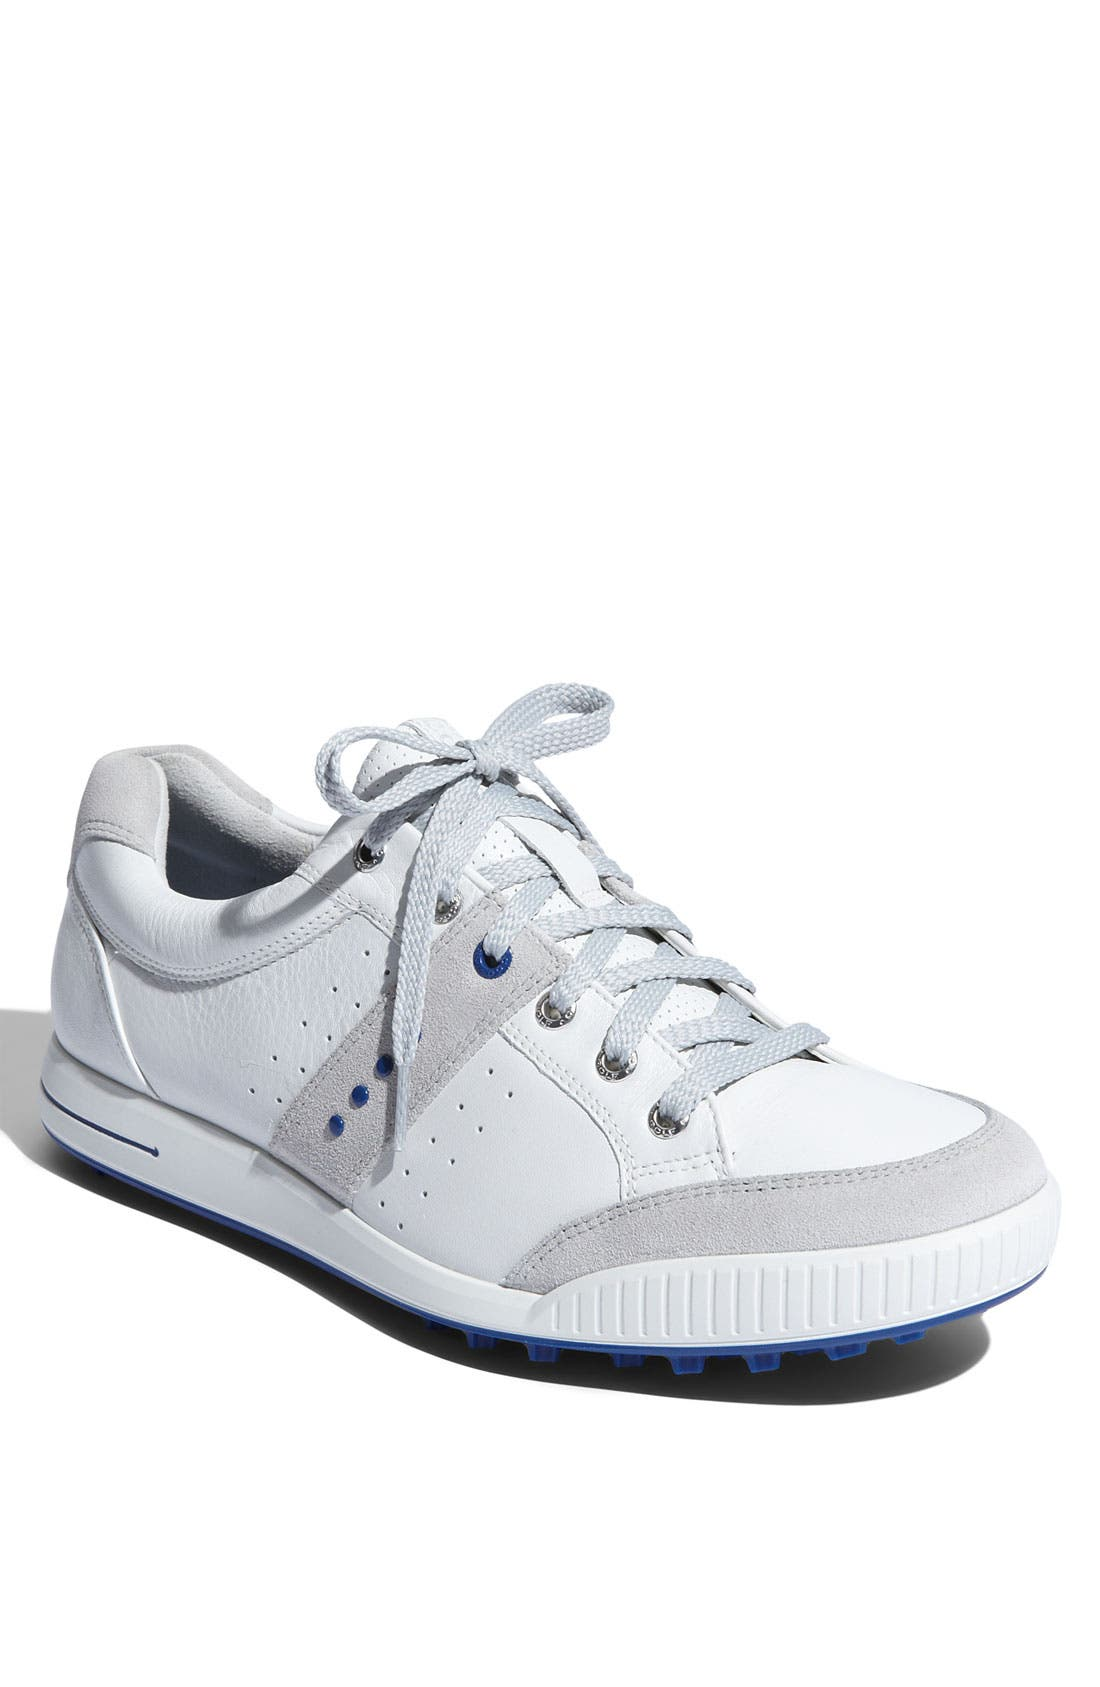 Alternate Image 1 Selected - ECCO 'Street Premiere' Golf Shoe (Men)